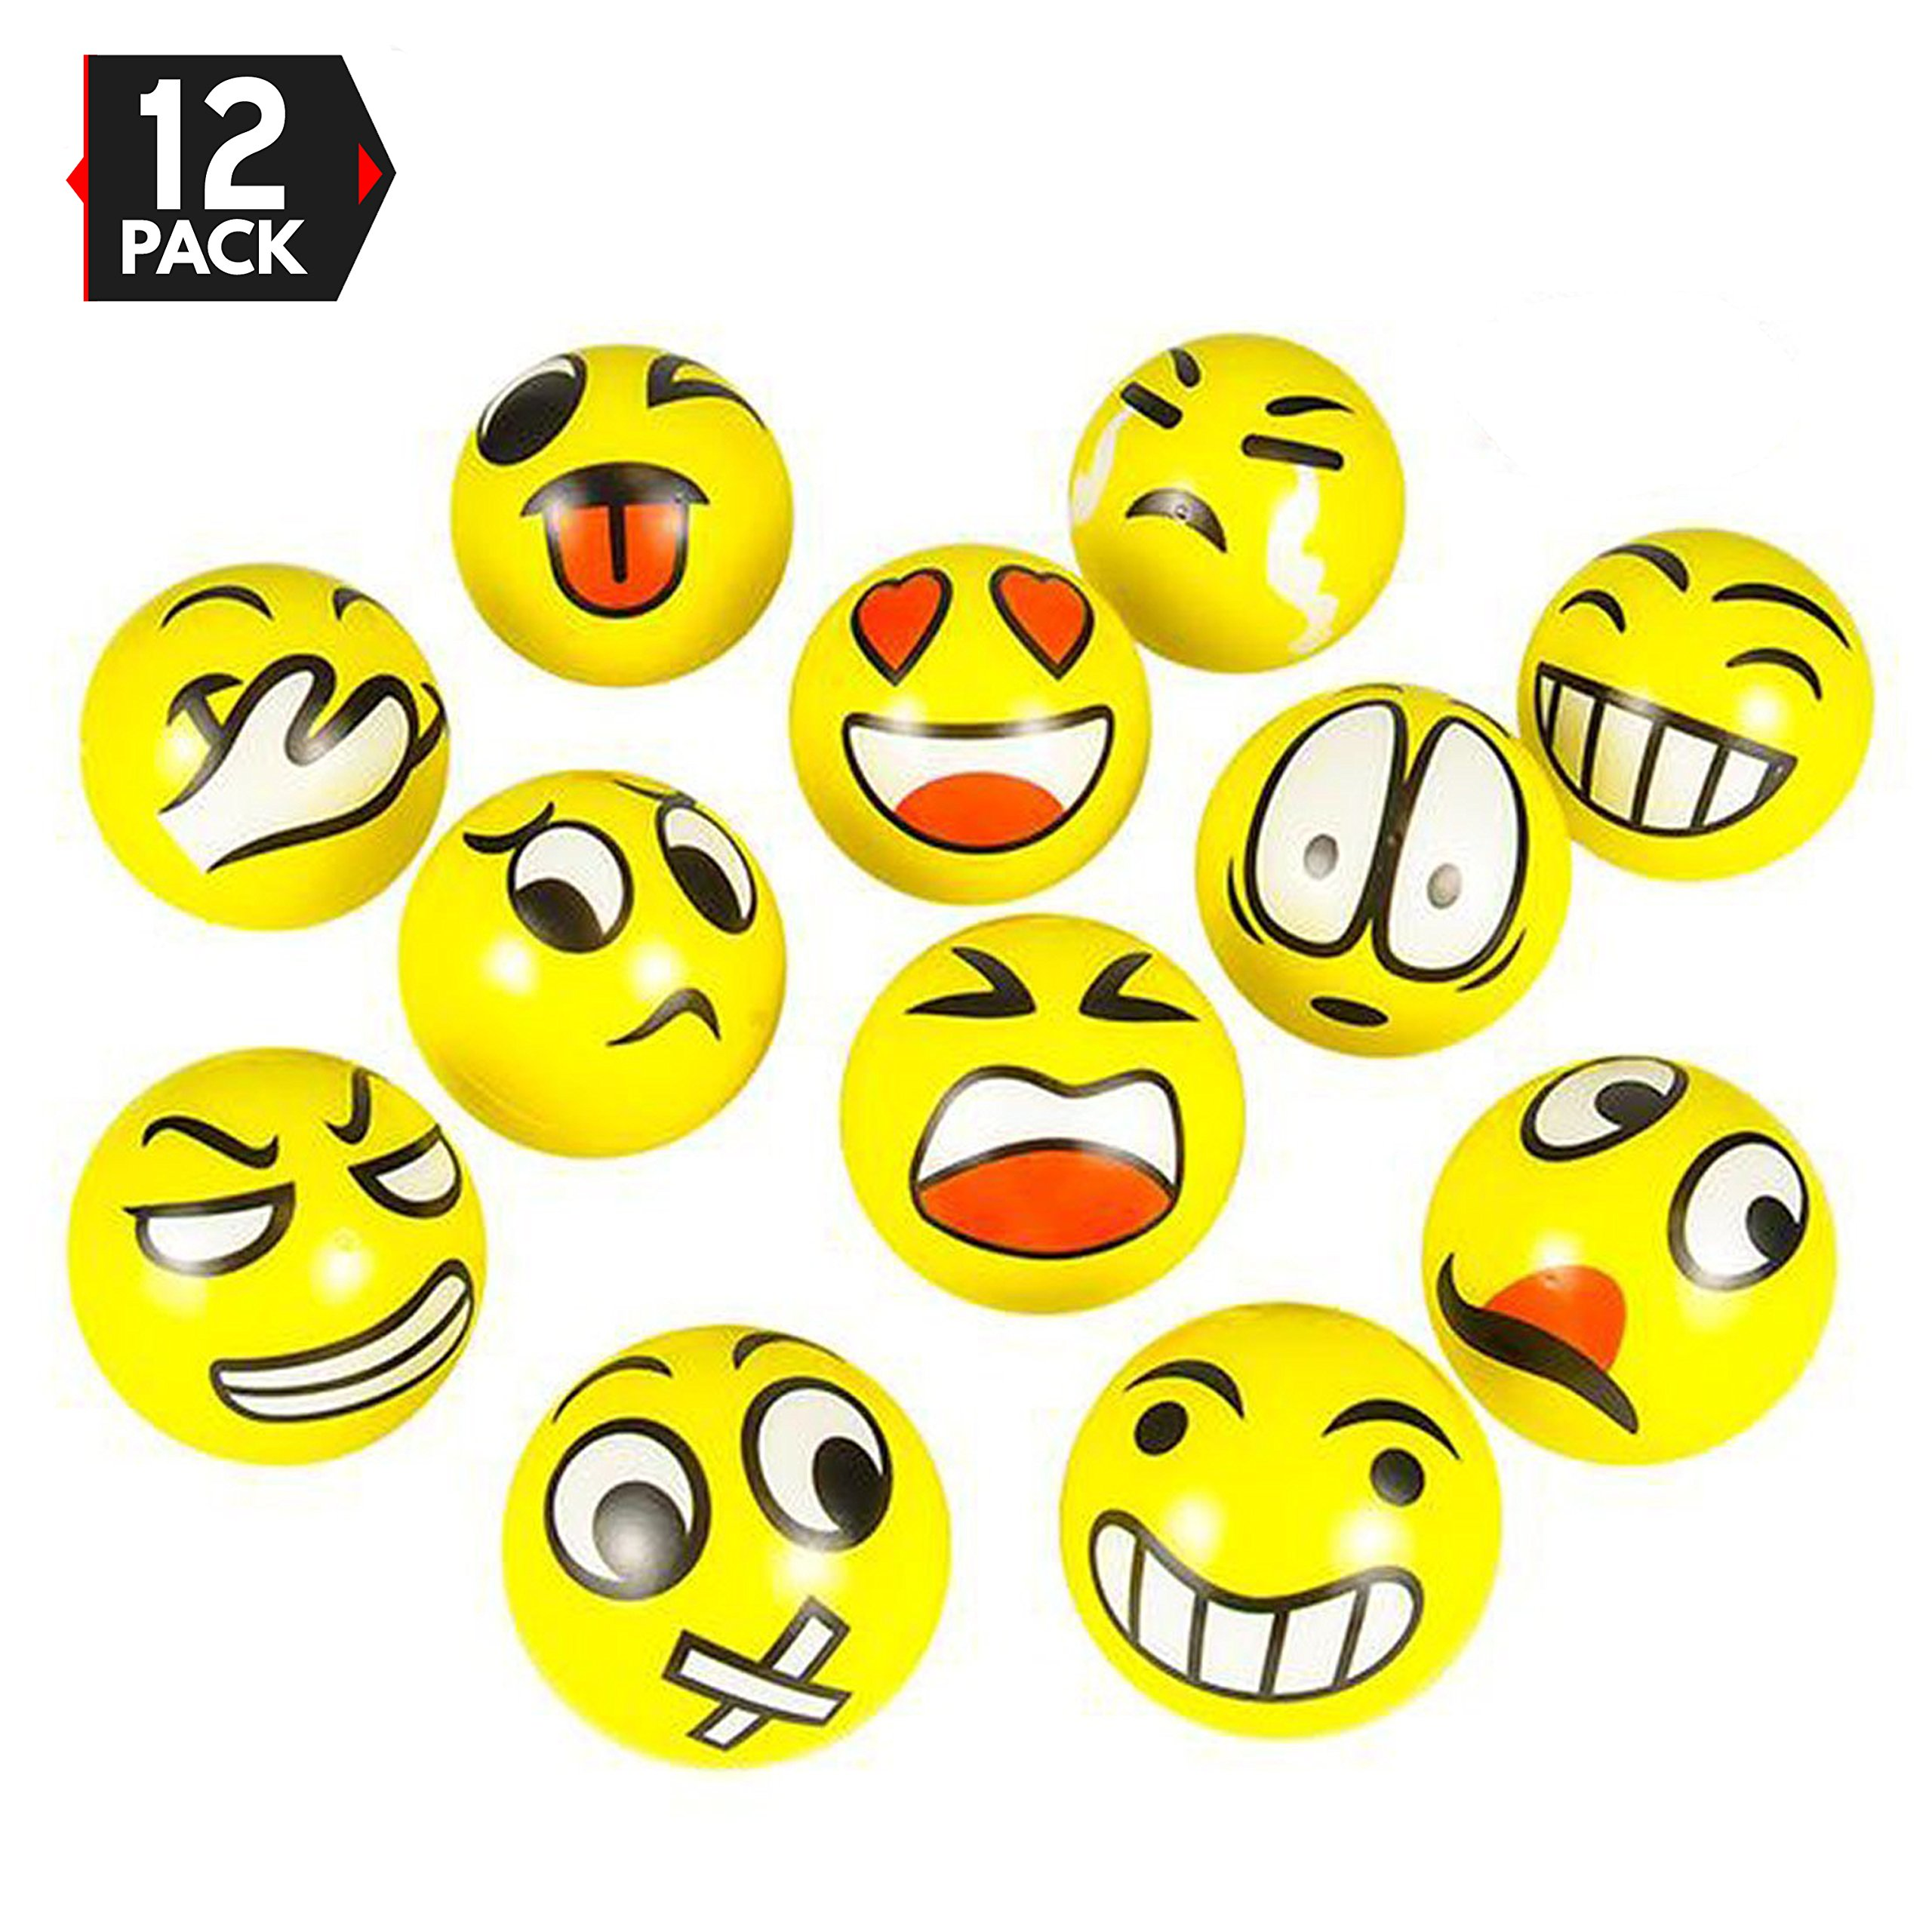 3'' Party Pack Emoji Stress Balls - Stress Reliver Party Favors, Toy Balls, Party Toys (12 Pack)